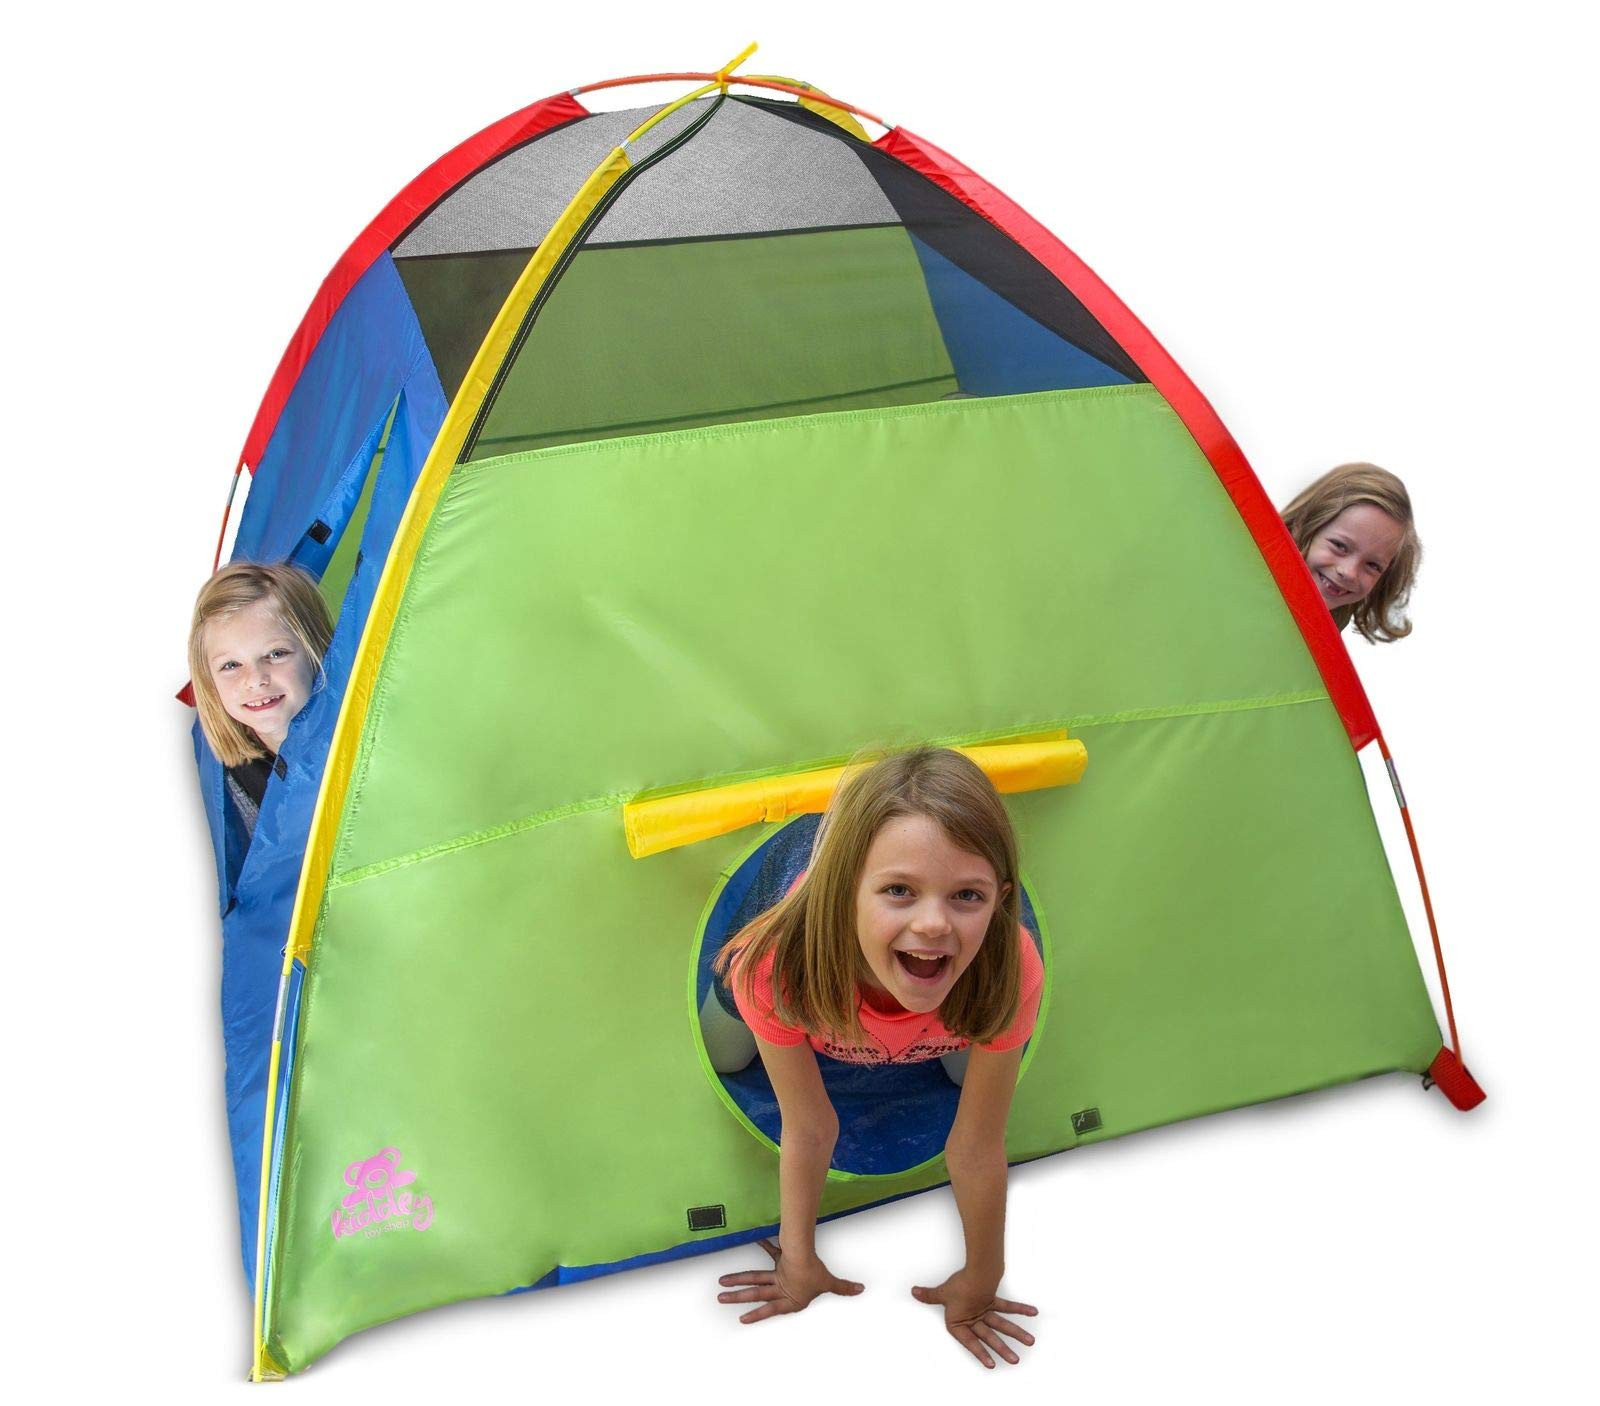 Kiddey Kids Play Tent & Playhouse - Indoor/Outdoor Playhouse for Boys and Girls - Promotes Early Learning, Social Bonding, Imagination Building and Roleplay - Easy Setup by Kiddey